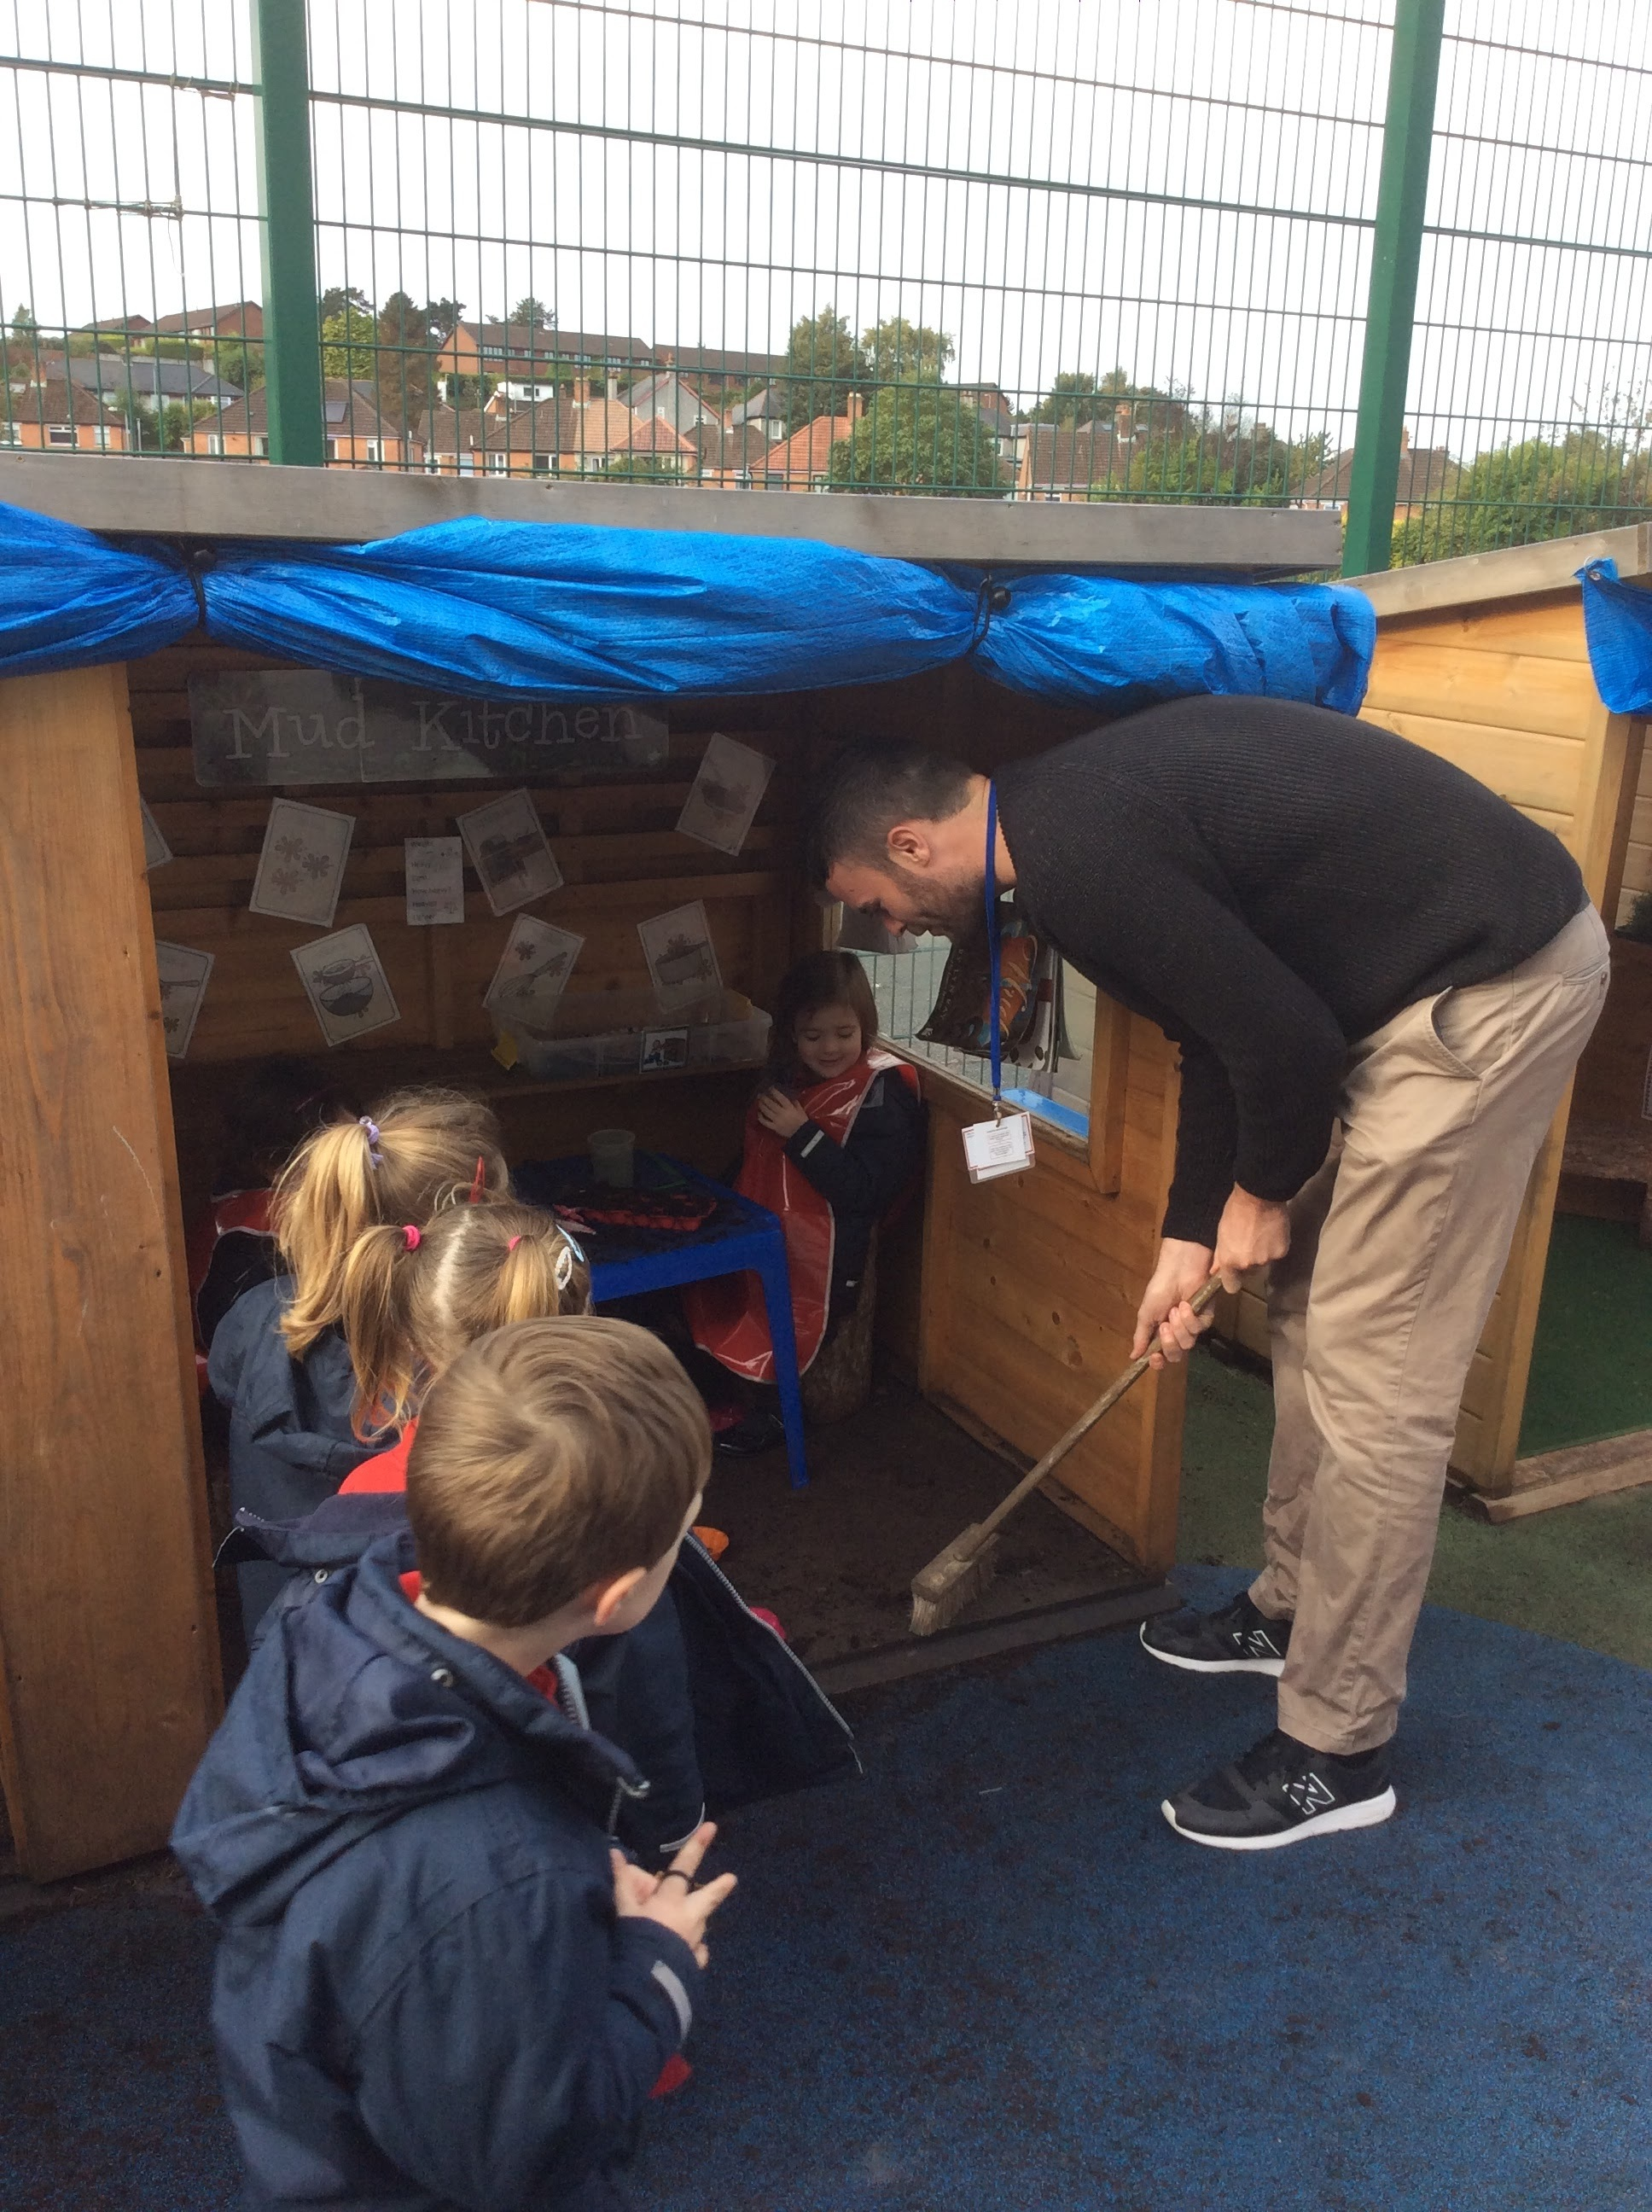 Fun in The Mud Kitchen....for the children and the Governors!